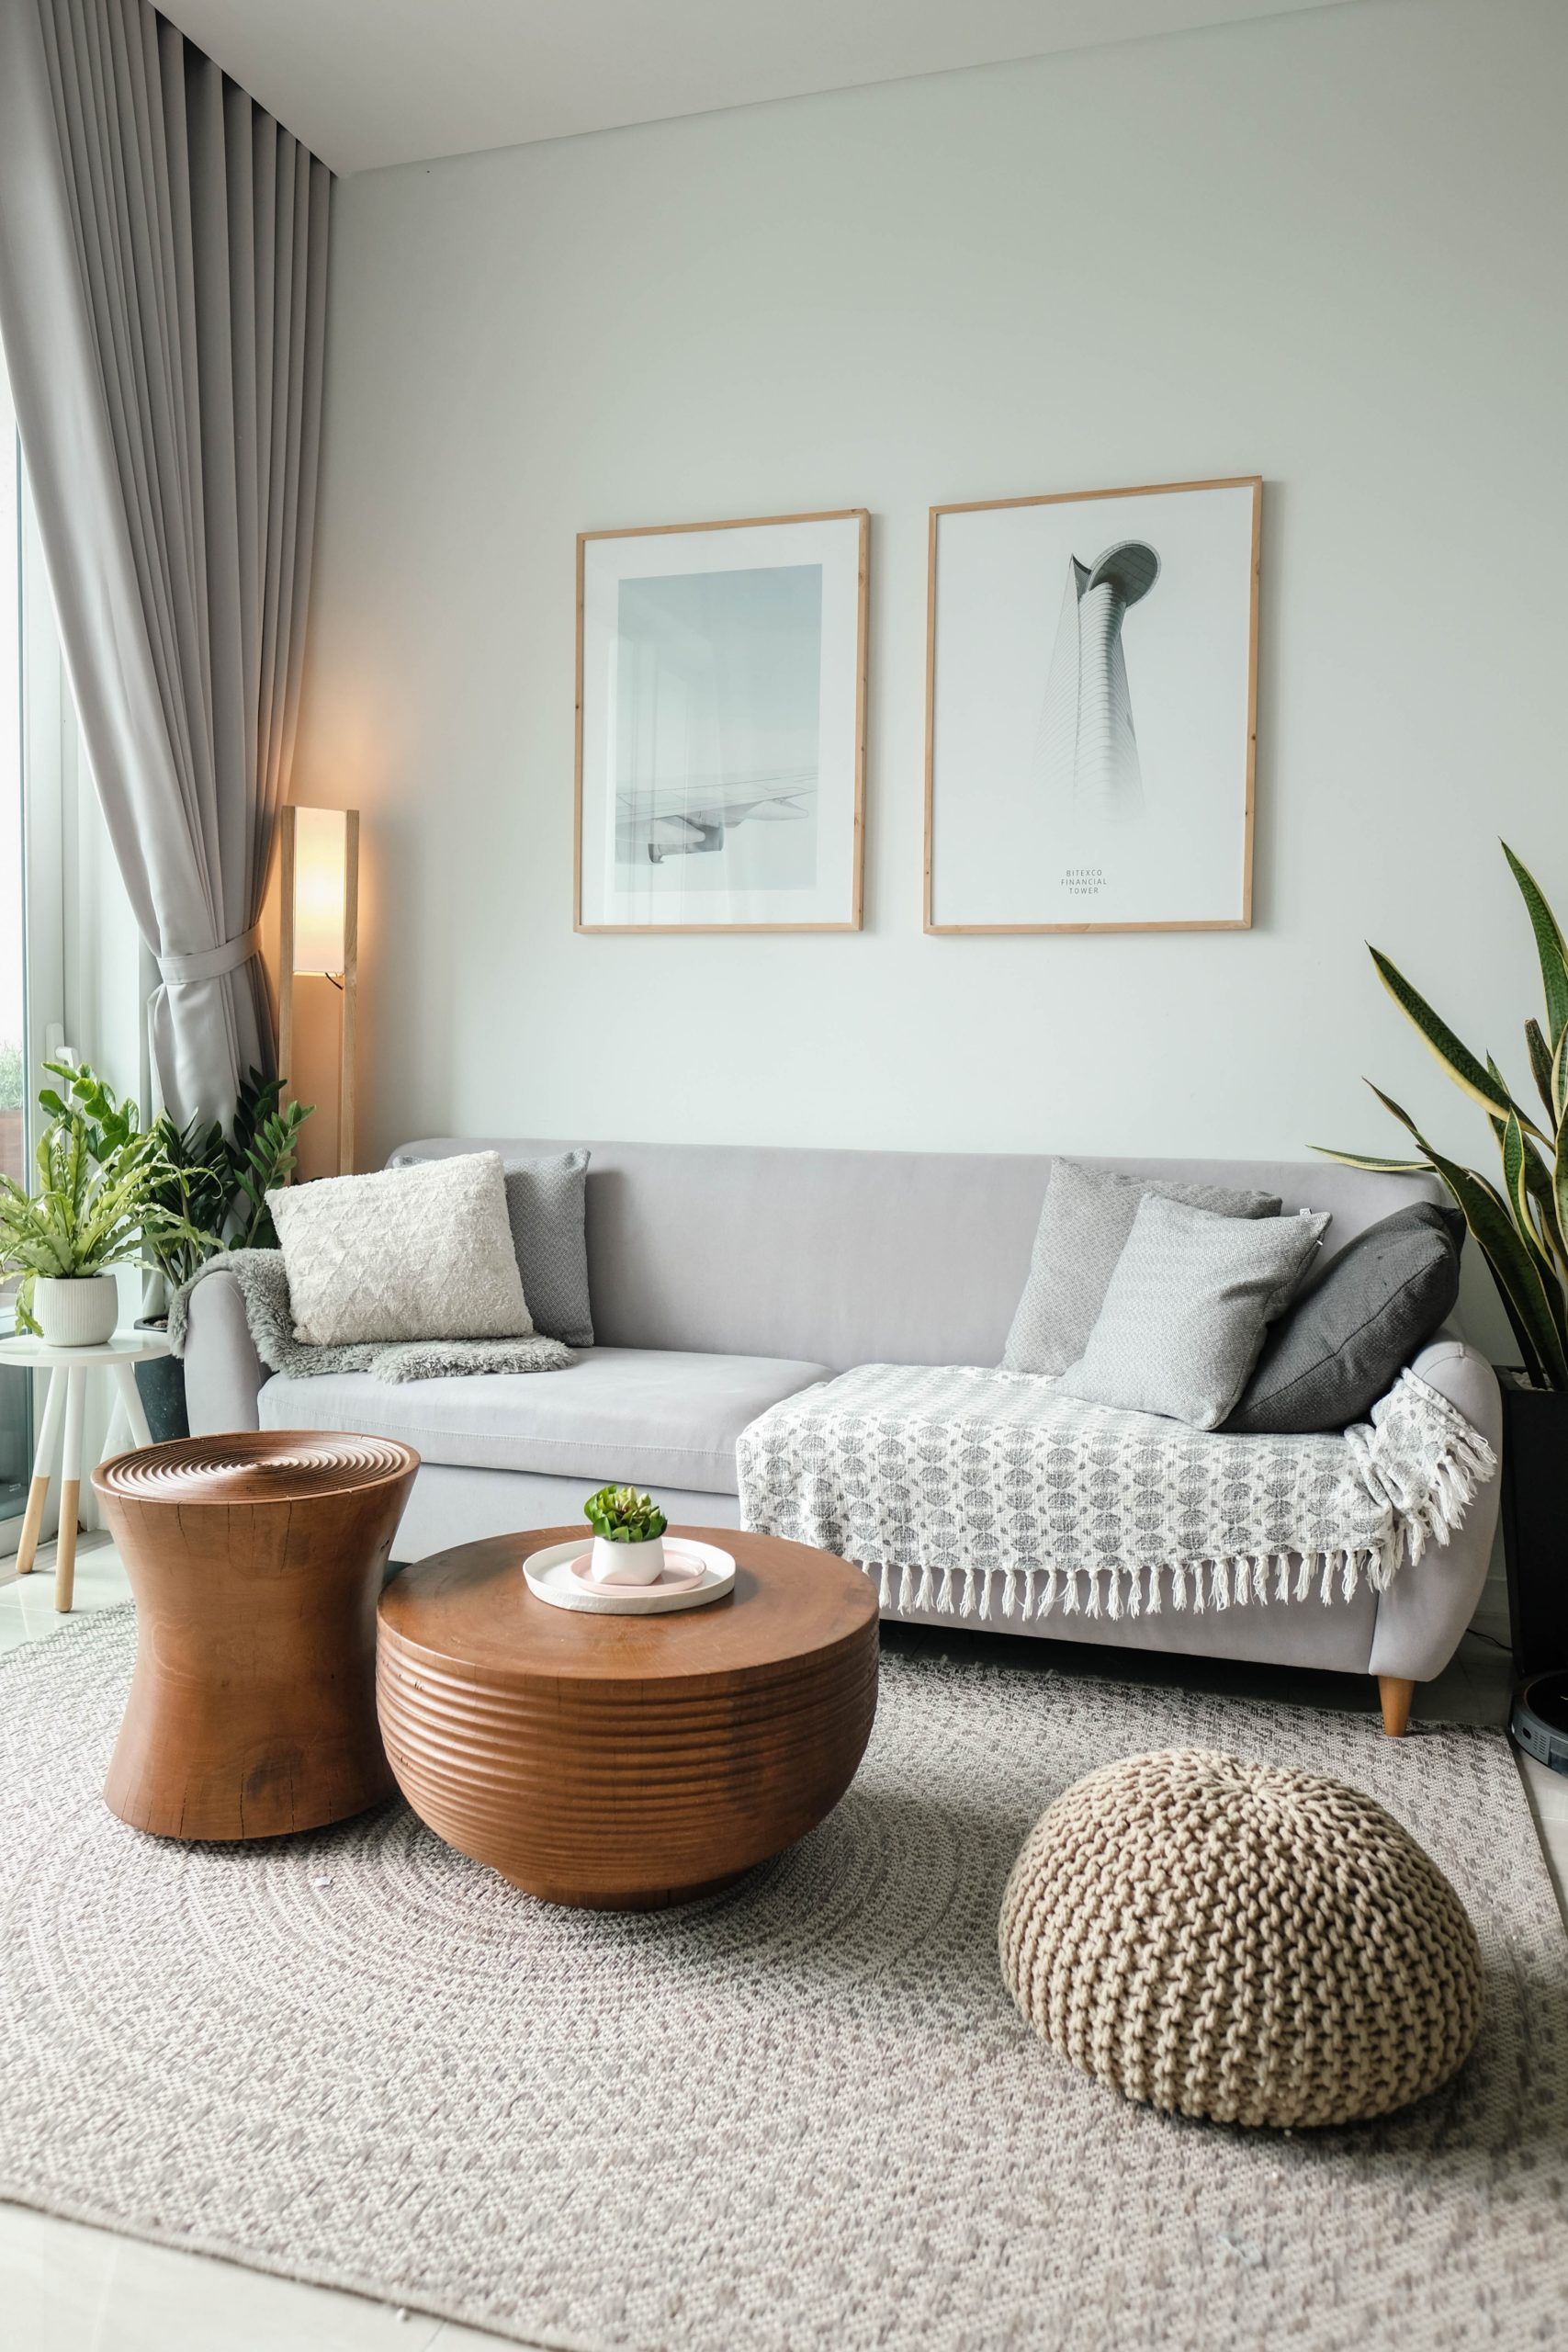 Home Staging in Wuppertal - mit Herz!